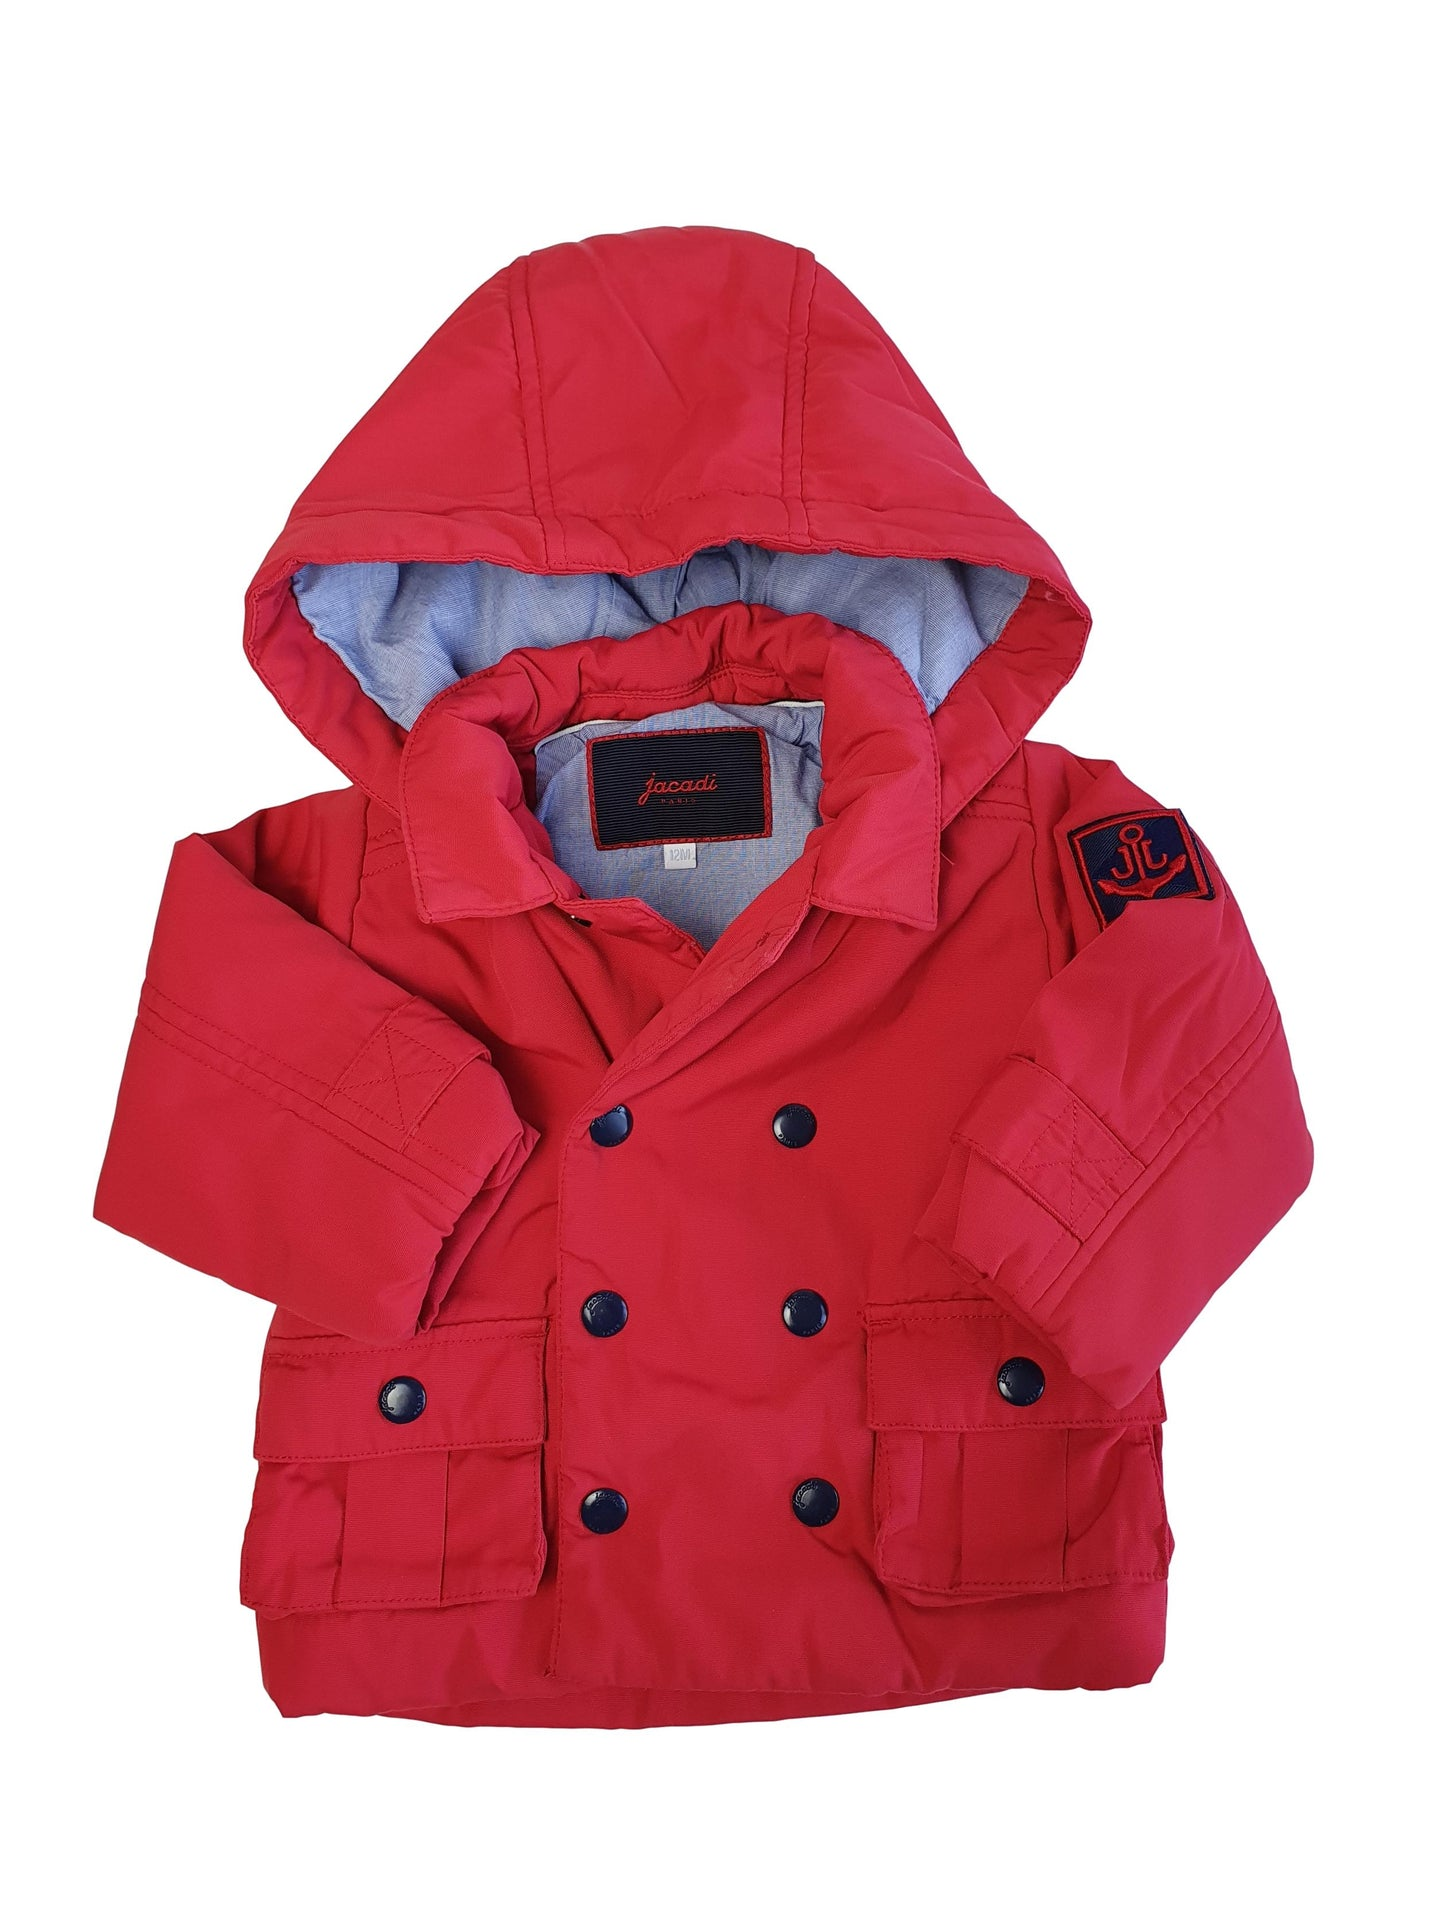 JACADI boy or girl jacket 12m